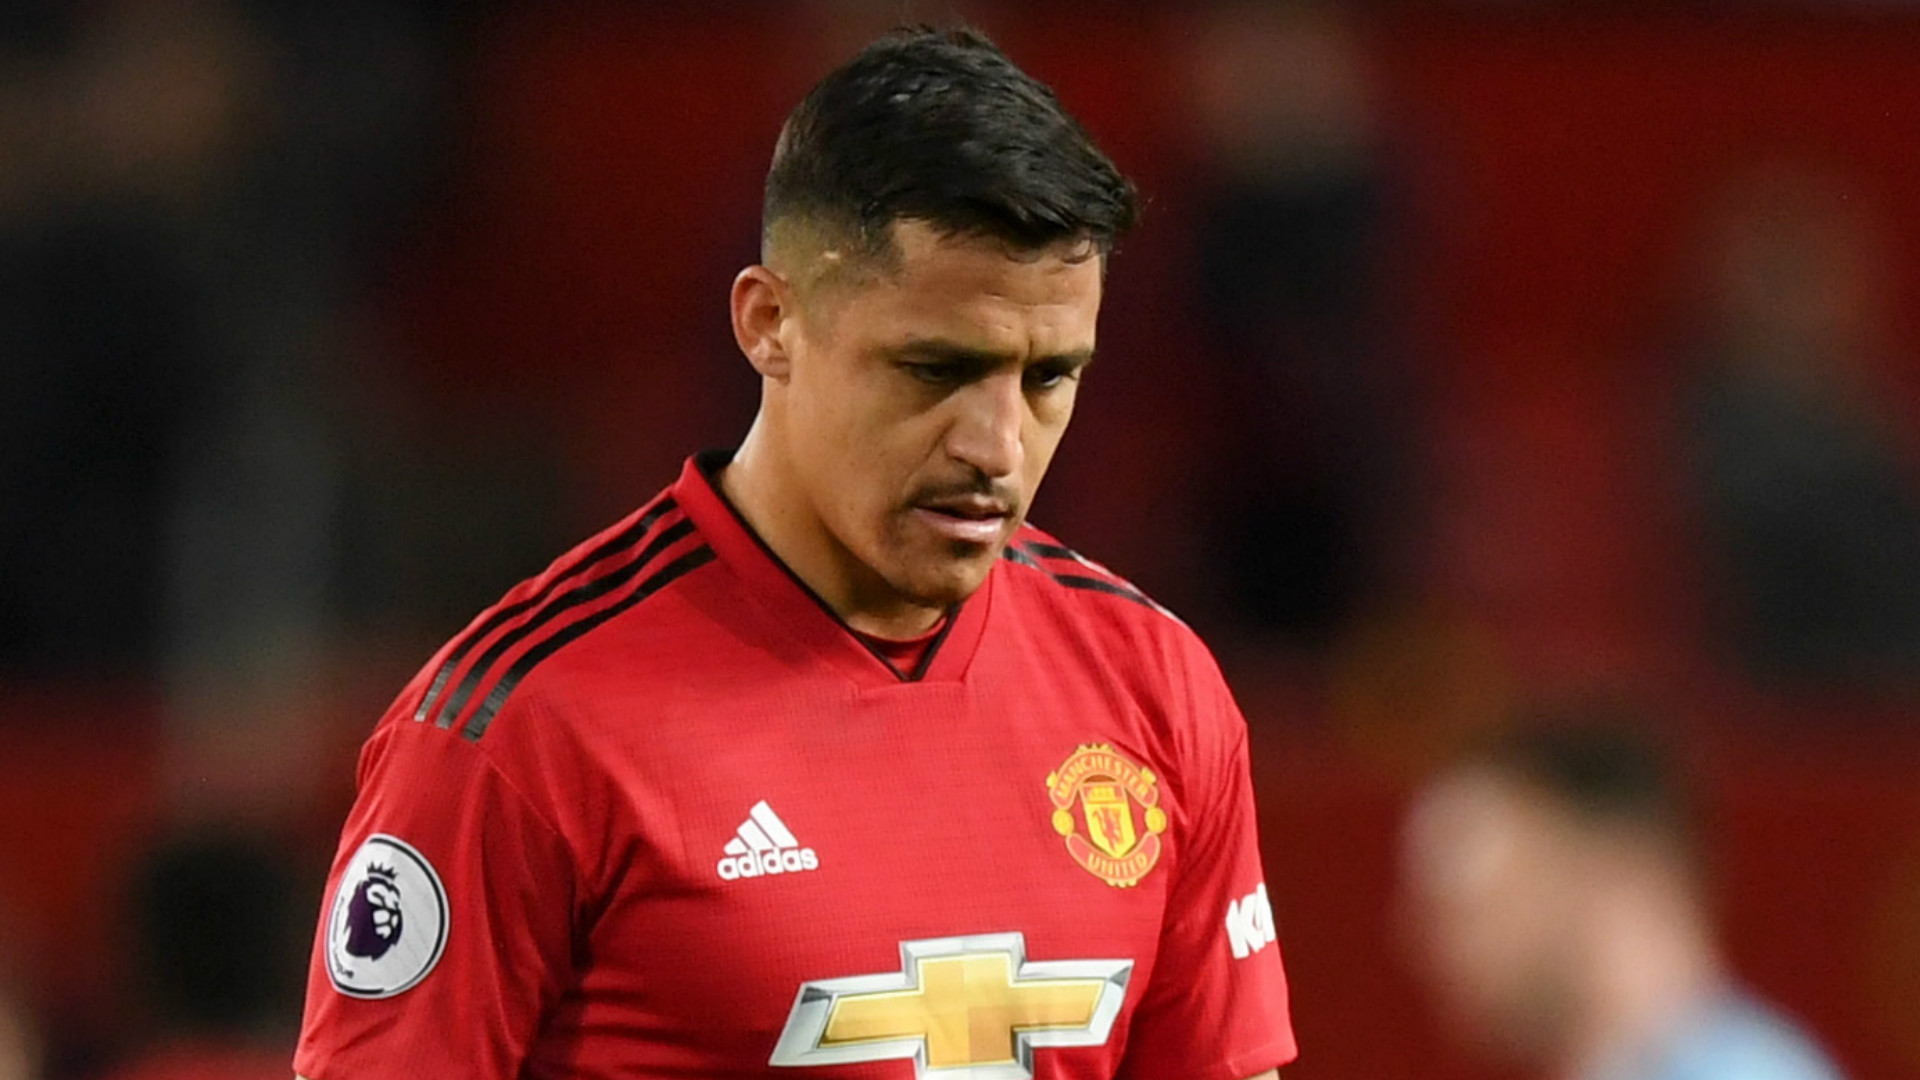 'There is no explanation!' - Herrera mystified by Sanchez's struggles at Man Utd